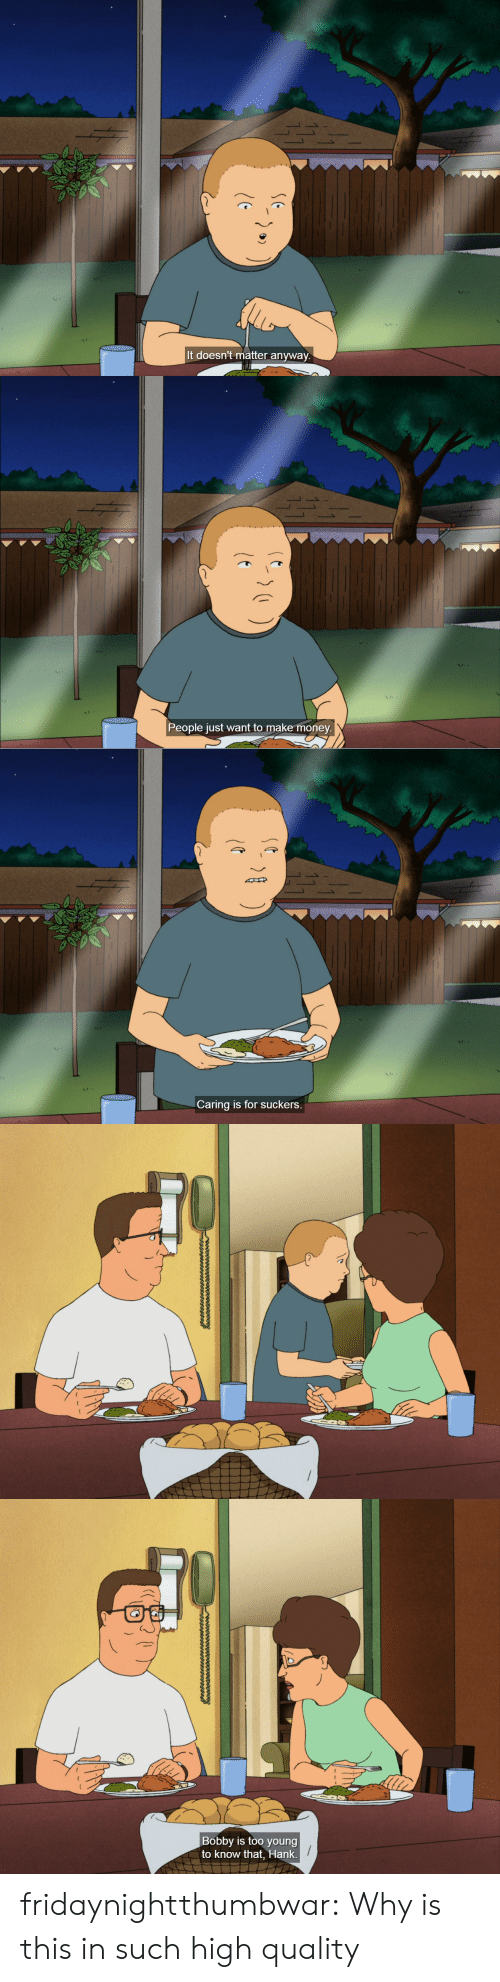 Money, Tumblr, and Blog: S 1  It doesn't matter anyway   People just want to make money.   Caring is for suckers.   Bobby is too young  to know that, Hank fridaynightthumbwar: Why is this in such high quality